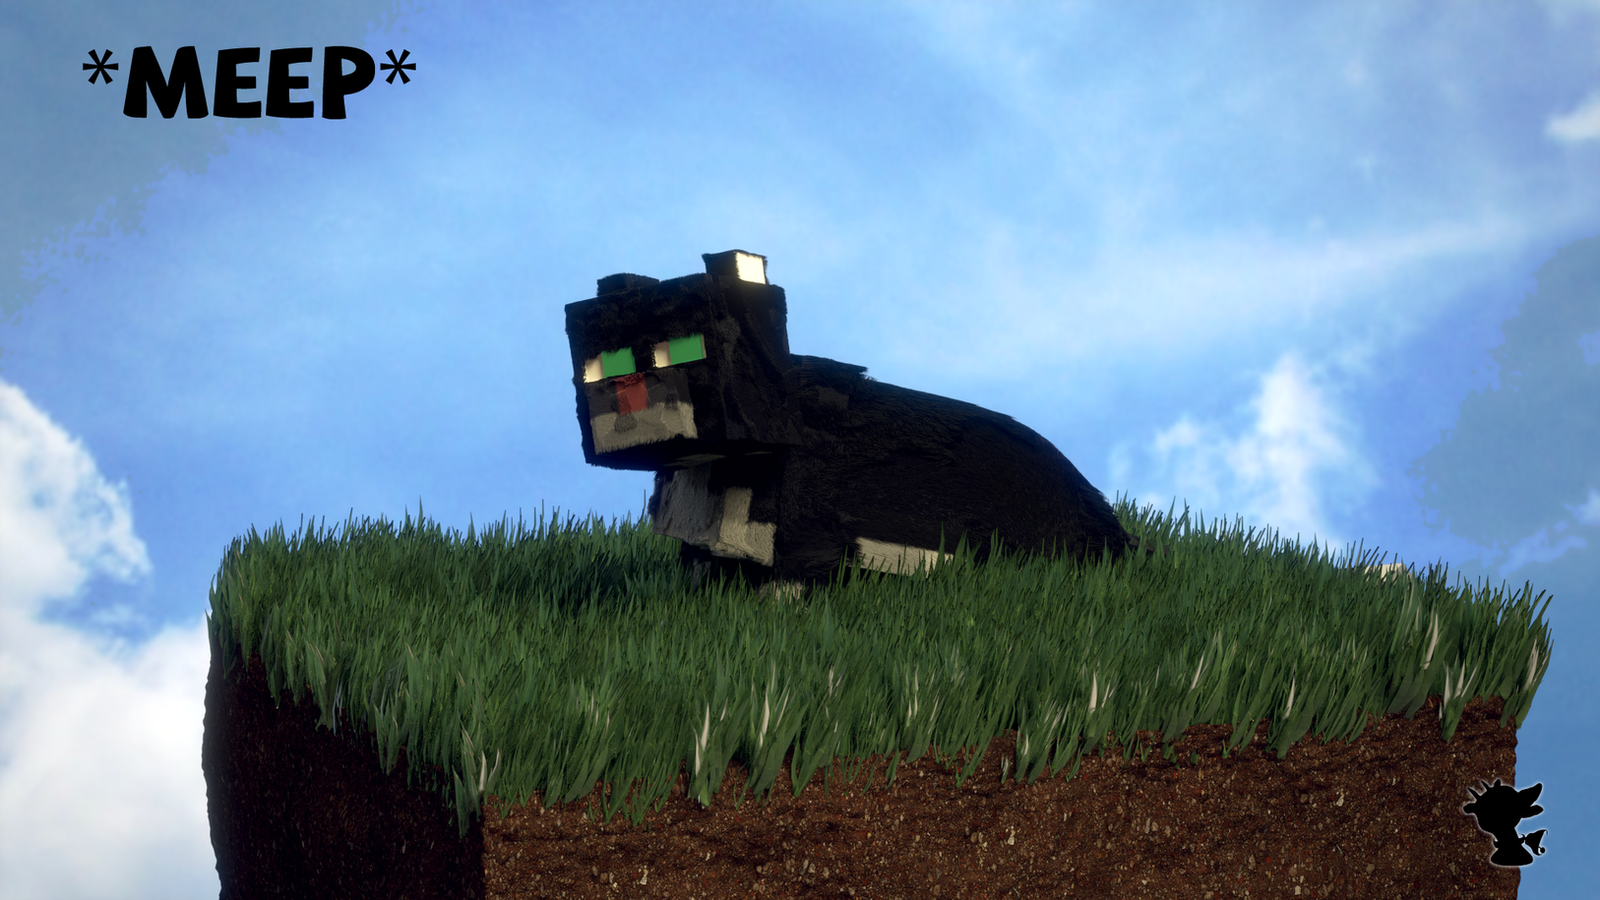 A Reasonably Realistic Minecraft Cat on Grass by ...